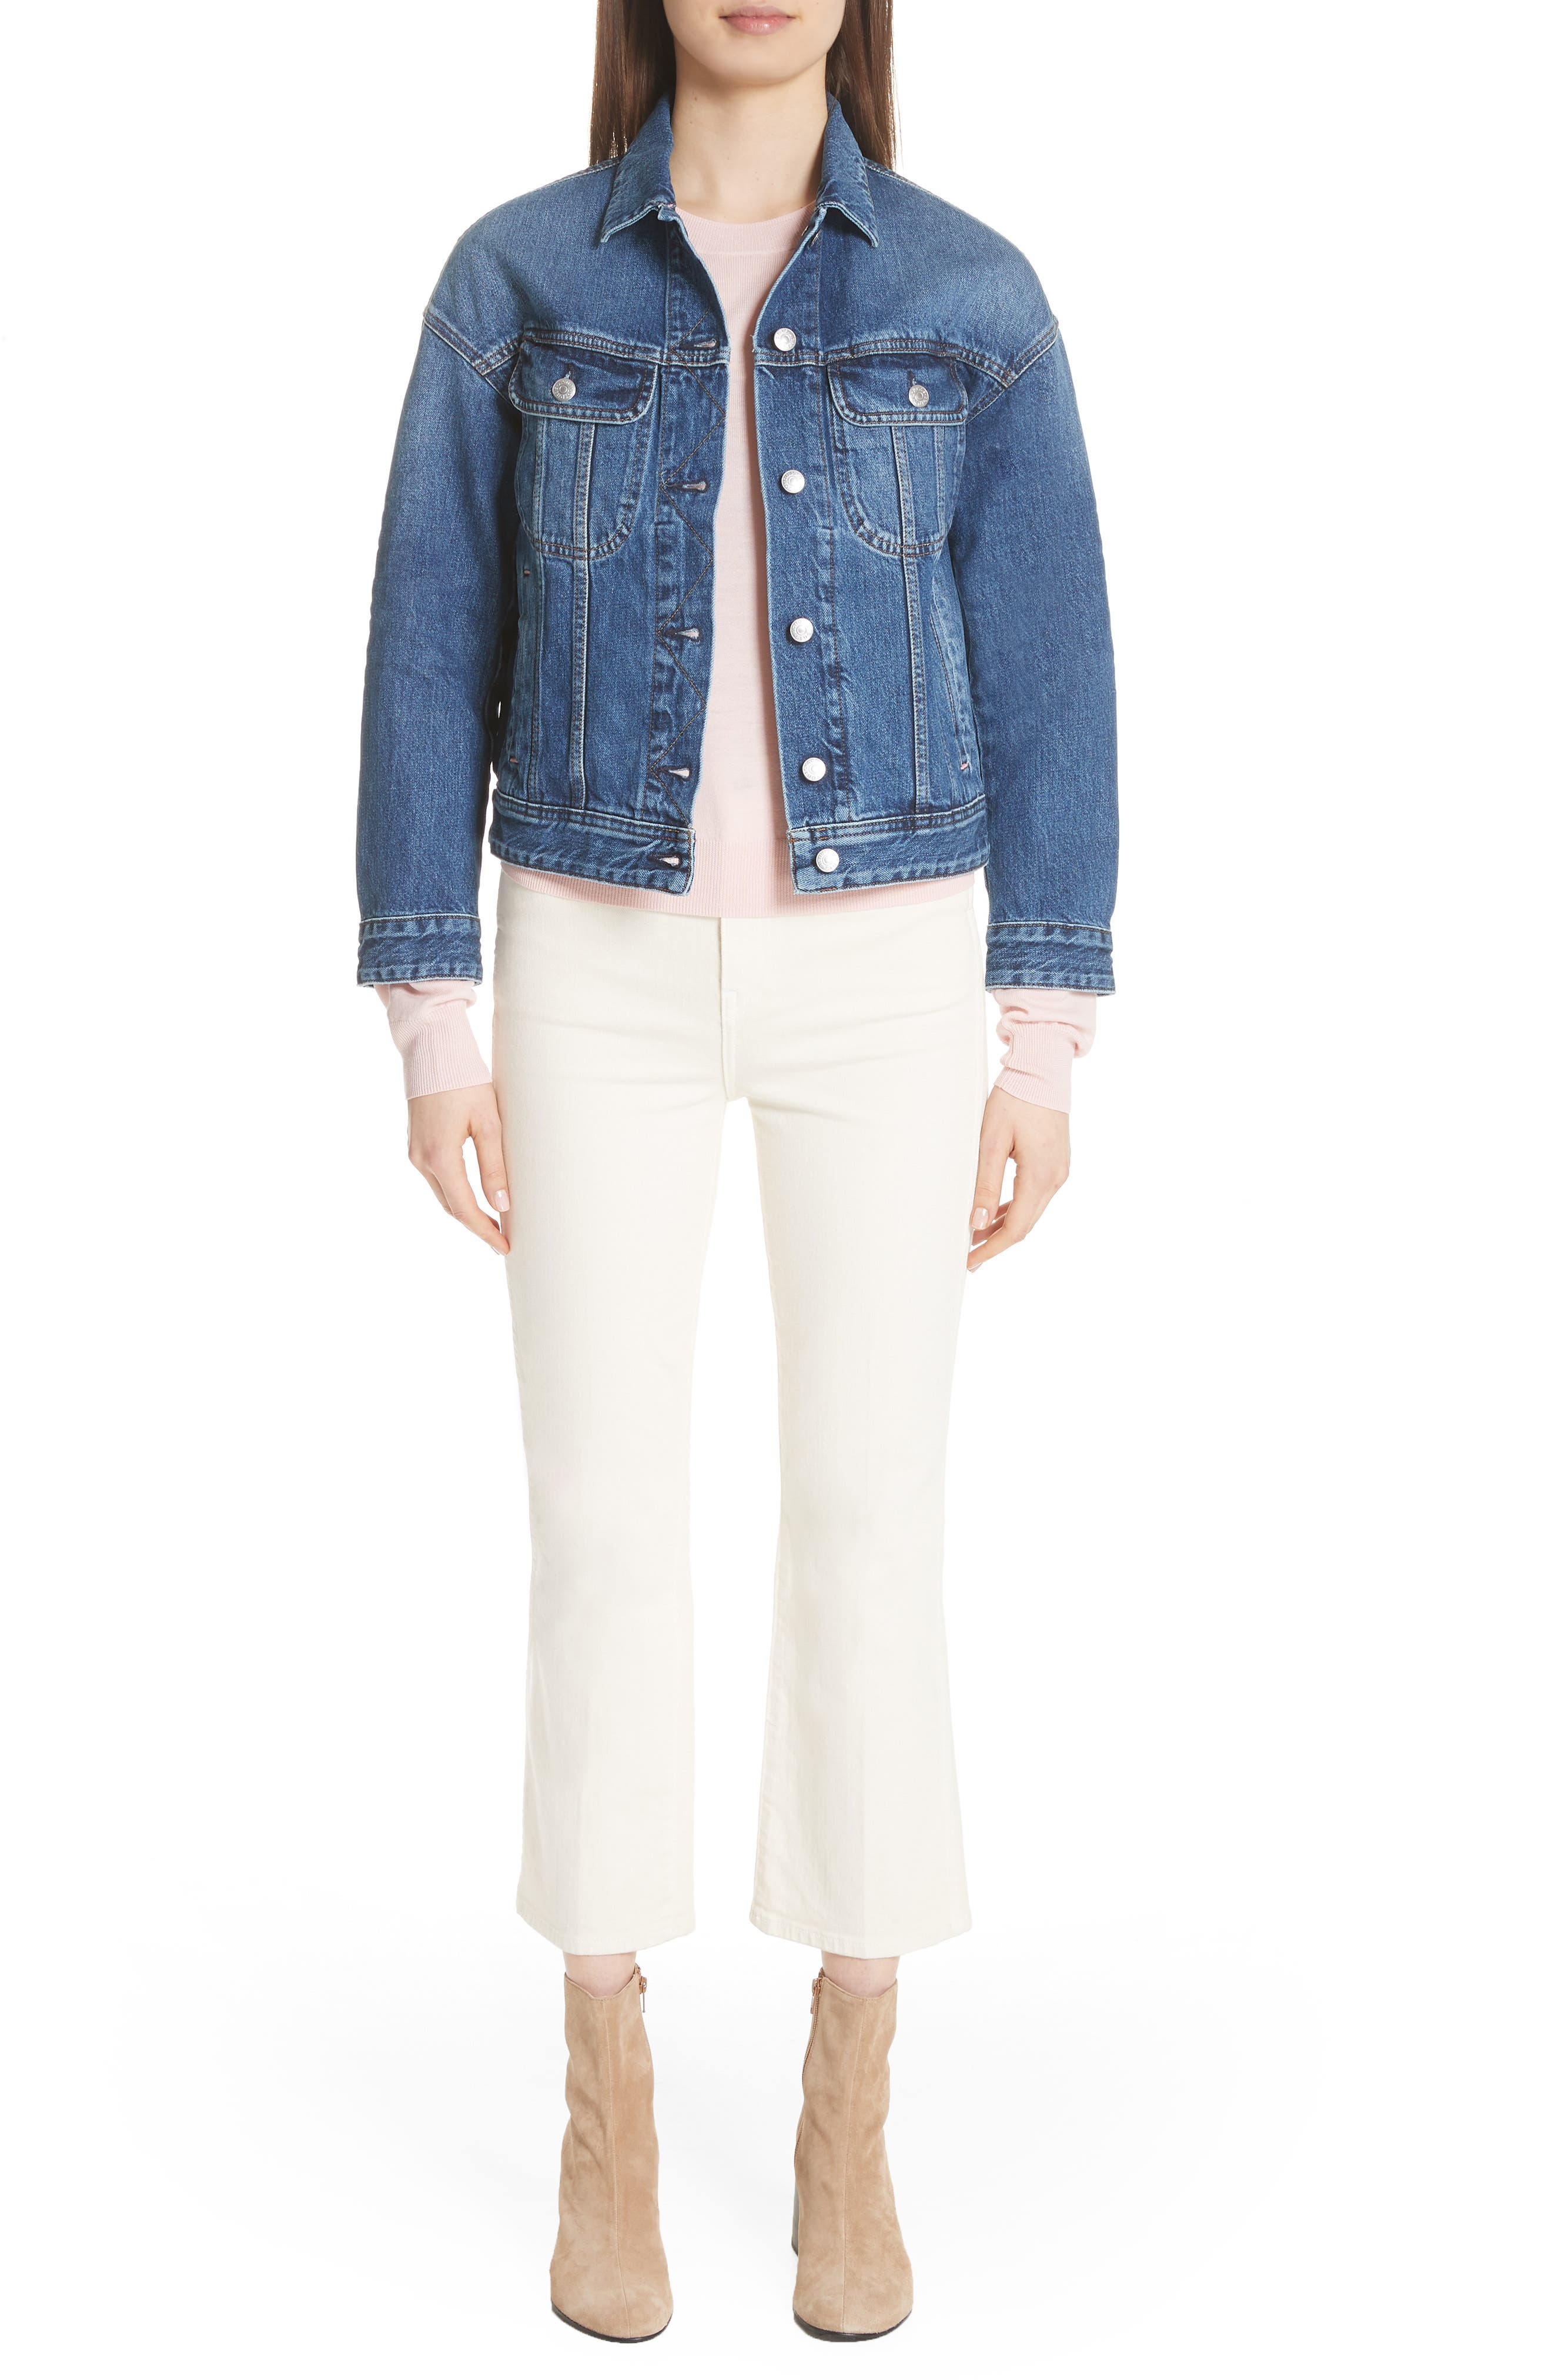 Lamp Denim Jacket,                             Alternate thumbnail 7, color,                             400